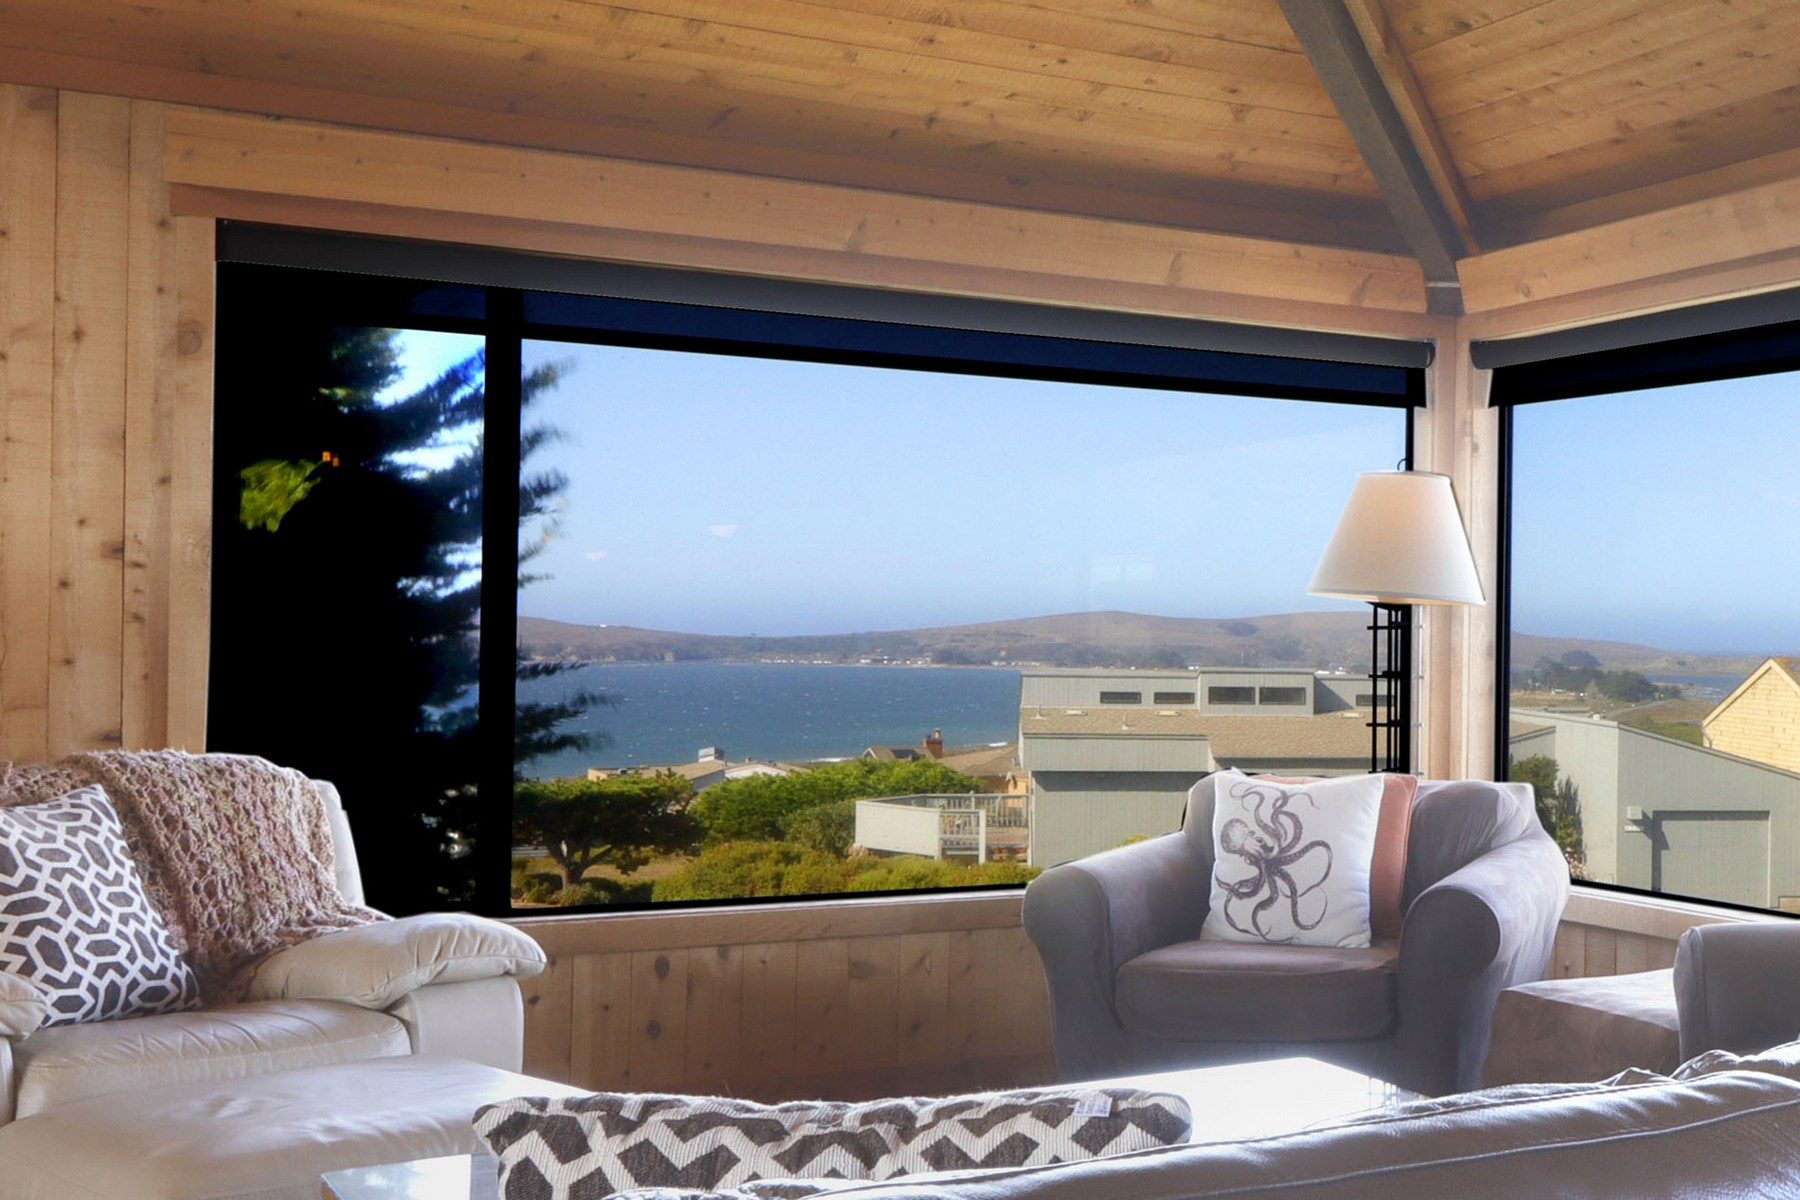 Single Family Homes for Sale at 180 Surfbird Court Bodega Bay, California 94923 United States